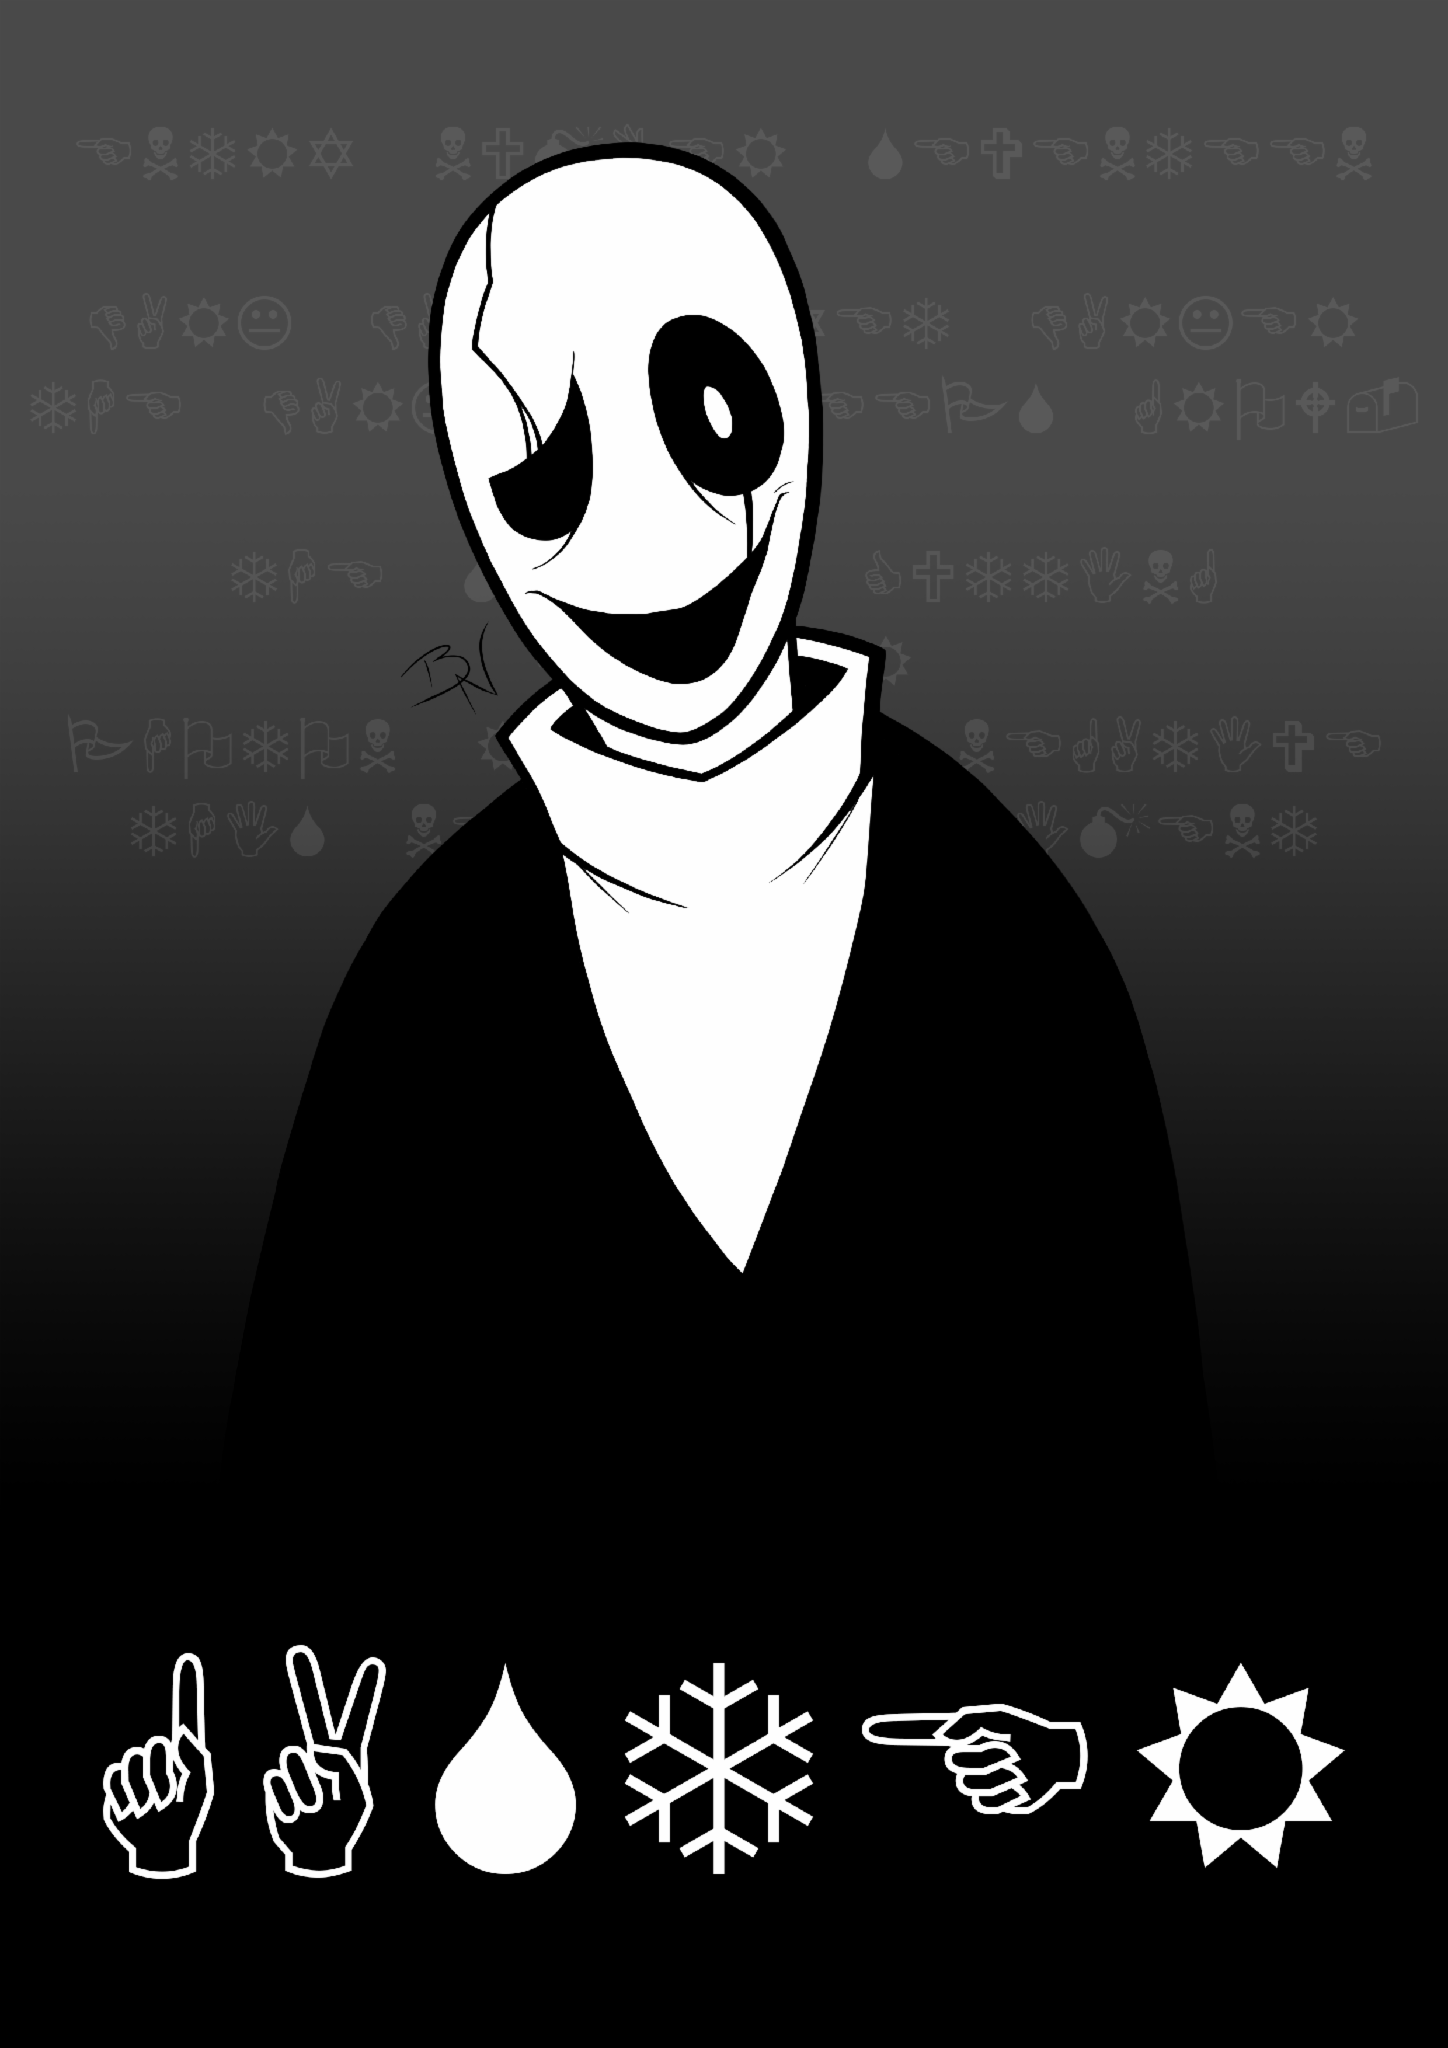 Who was Gaster?